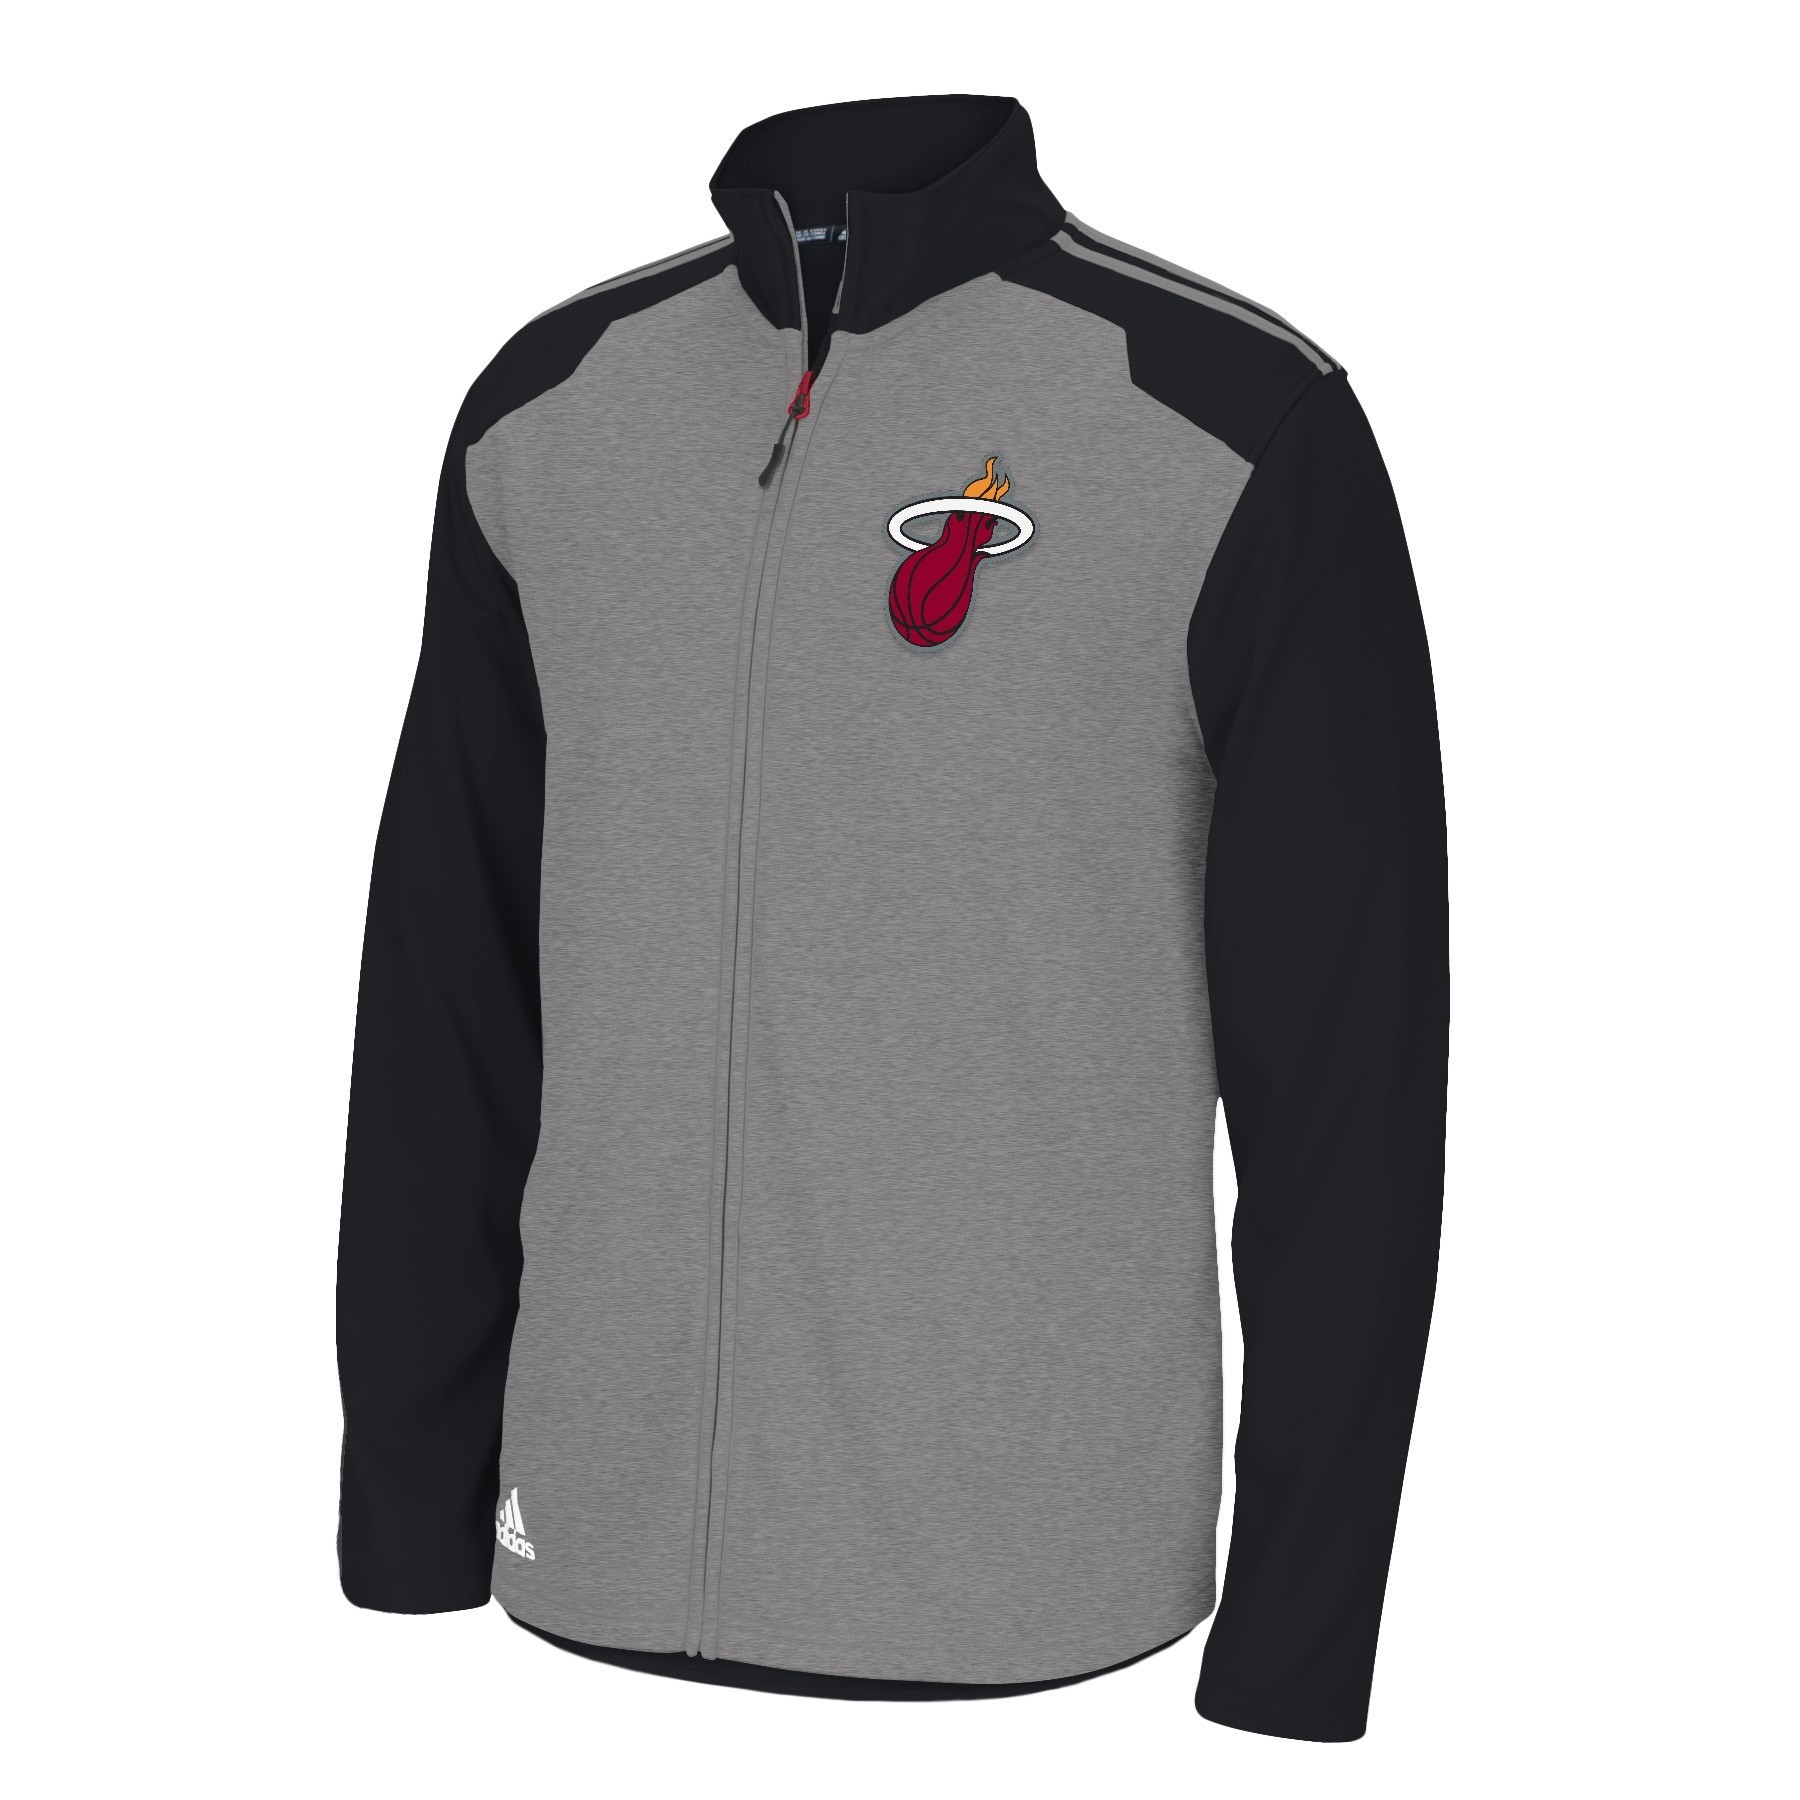 Miami Heat Adidas 2014 NBA Climawarm Full Zip Men's Fleece Jacket